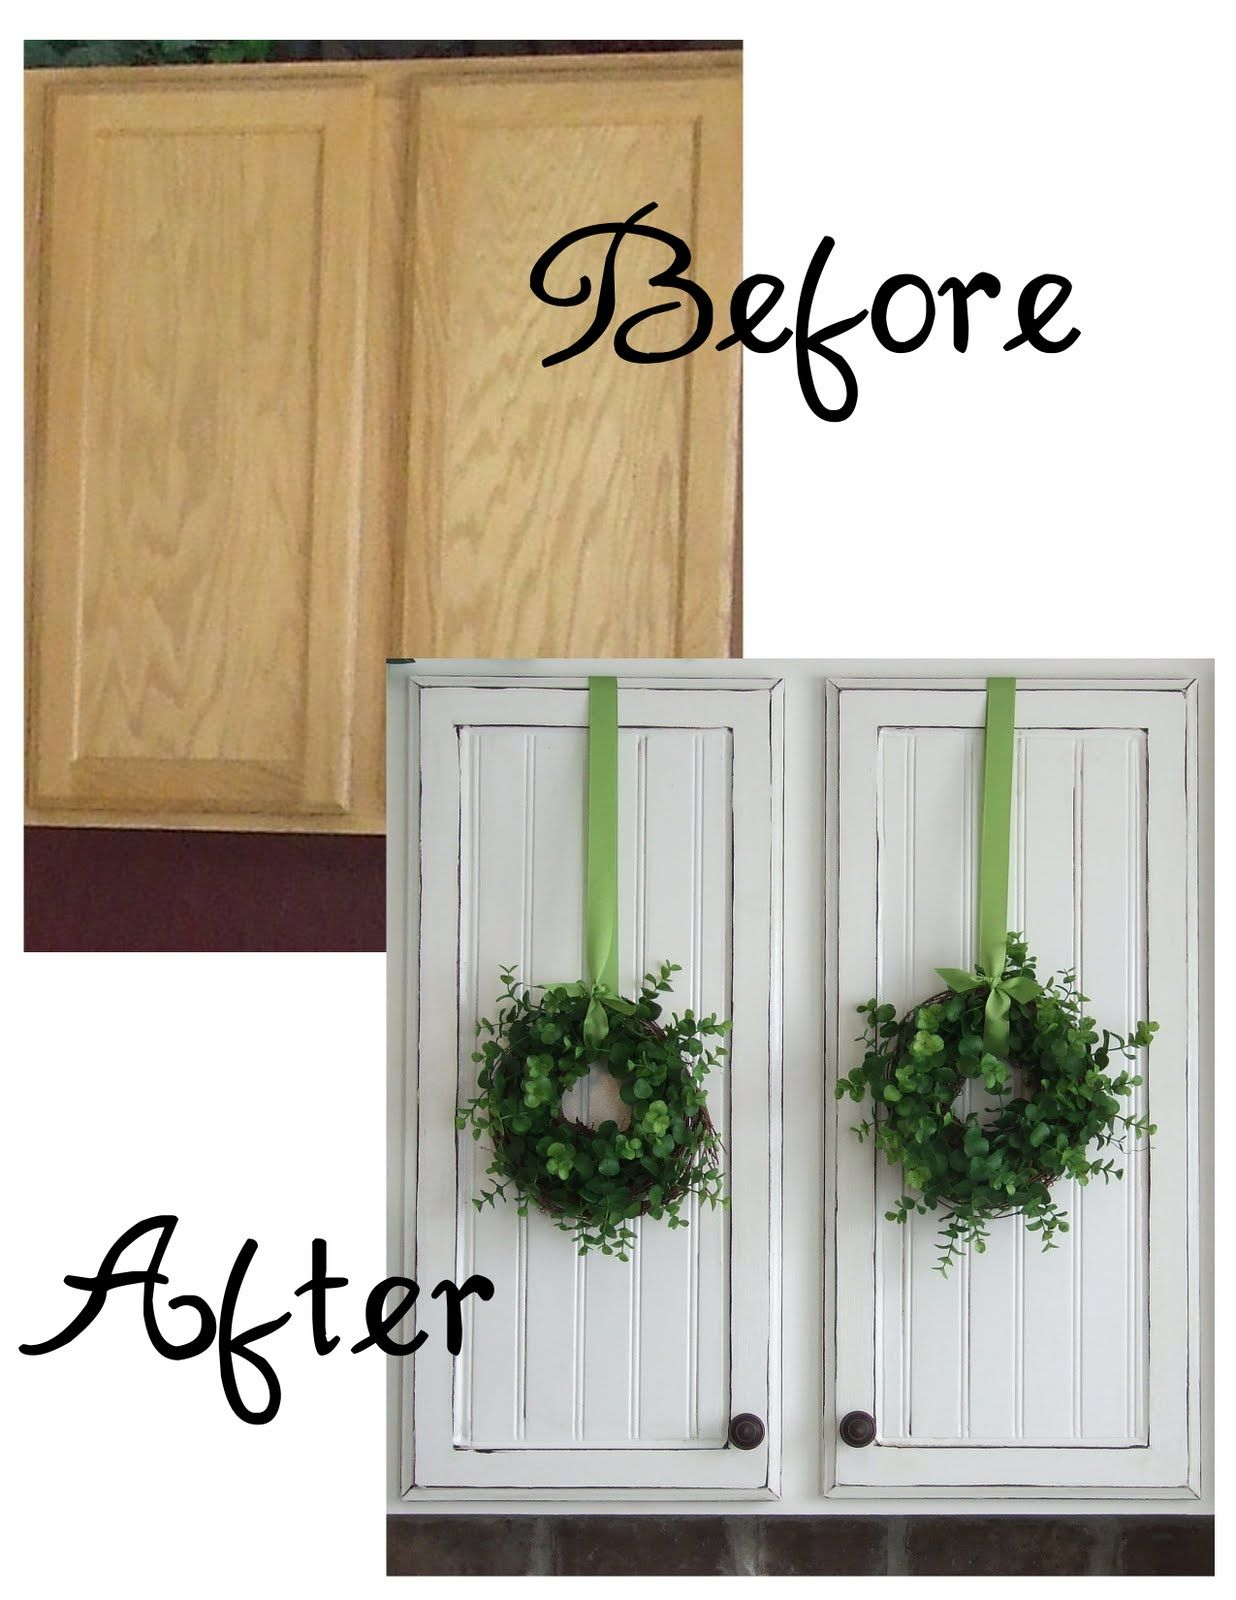 wreaths on cabinets (or doors) - put command strip hooks ...